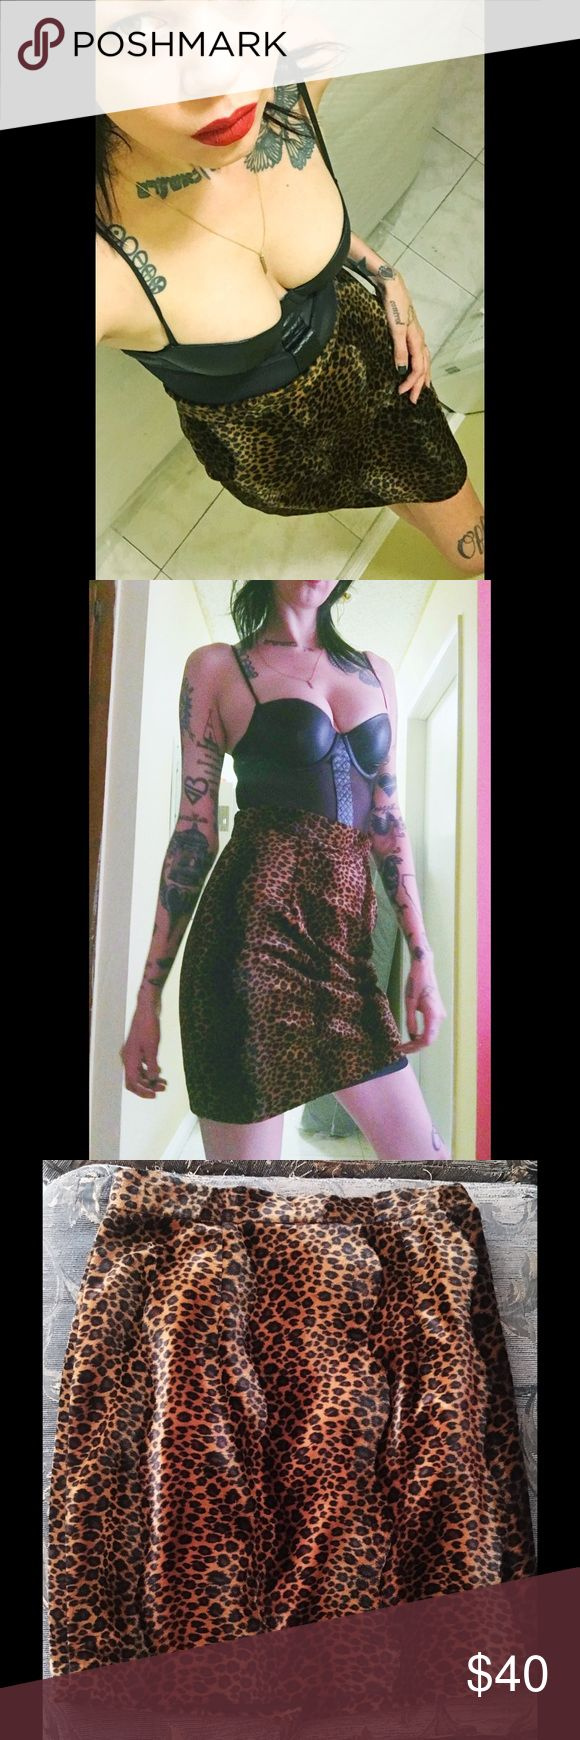 "🖤 Best Leopard Pencil Skirt In The World 🖤 I have been searching high & low for the ultimate faux fur high waisted leopard print pencil skirt, & I FOUND IT, & then it didn't fit me. 😭 Vintage 90's size 8, & actually pretty close to a modern size 8, too:   * 14.5"" waist (laid flat) * 19.5"" at widest hips (flat) * 19.5"" top to bottom   In beautiful condition, looks unworn & feels soooo plush, like a stuffed animal. A must have for any punk, goth, riot grrrl, pin up wardrobe 🖤 Skirts Pencil"